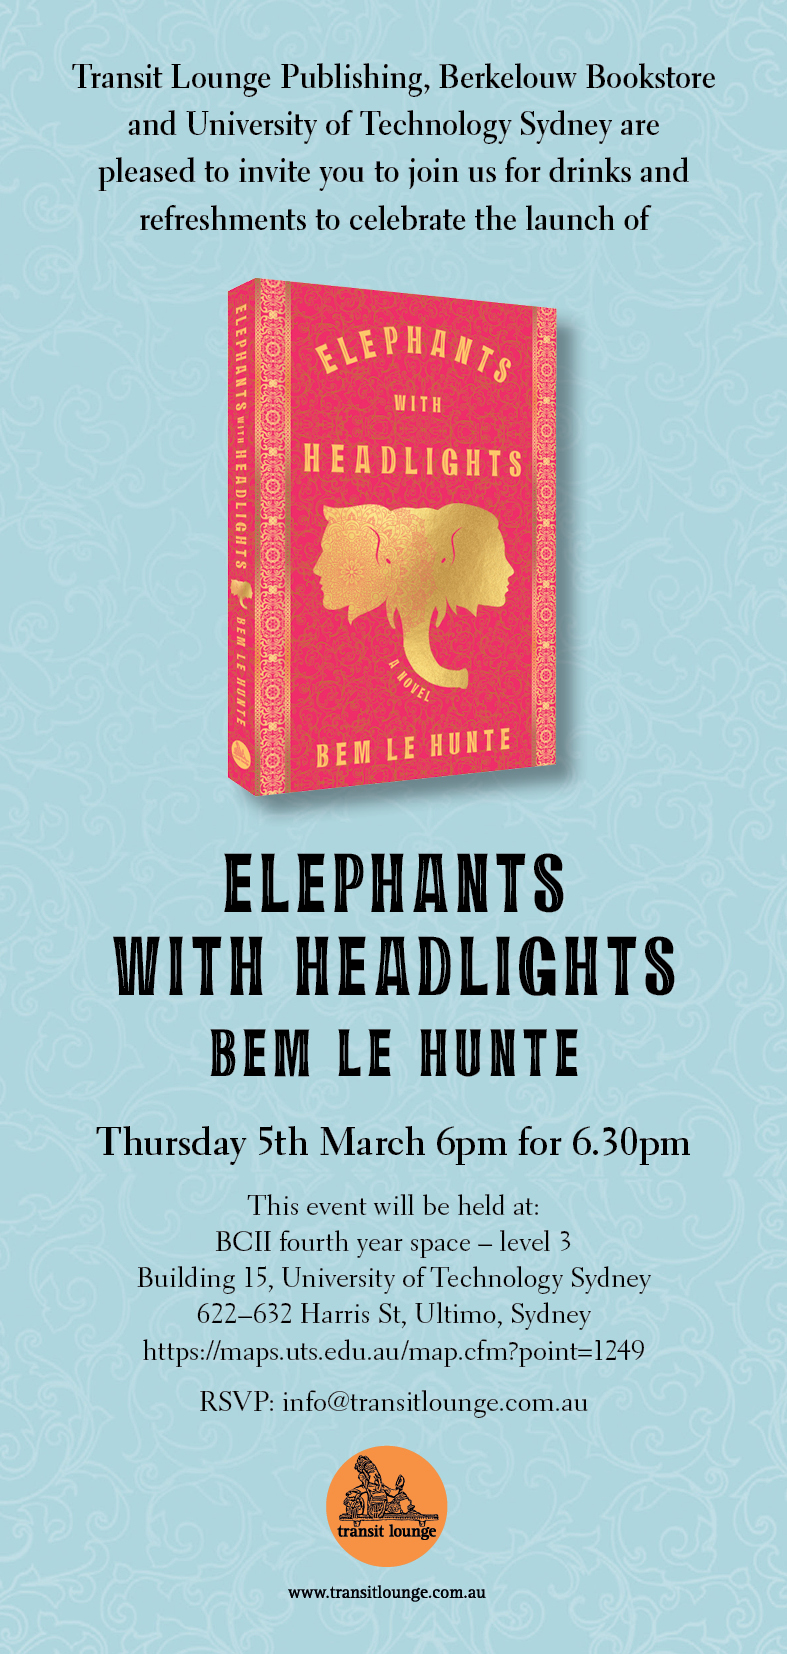 Launch of Elephants with Headlights by Bem Le Hunte